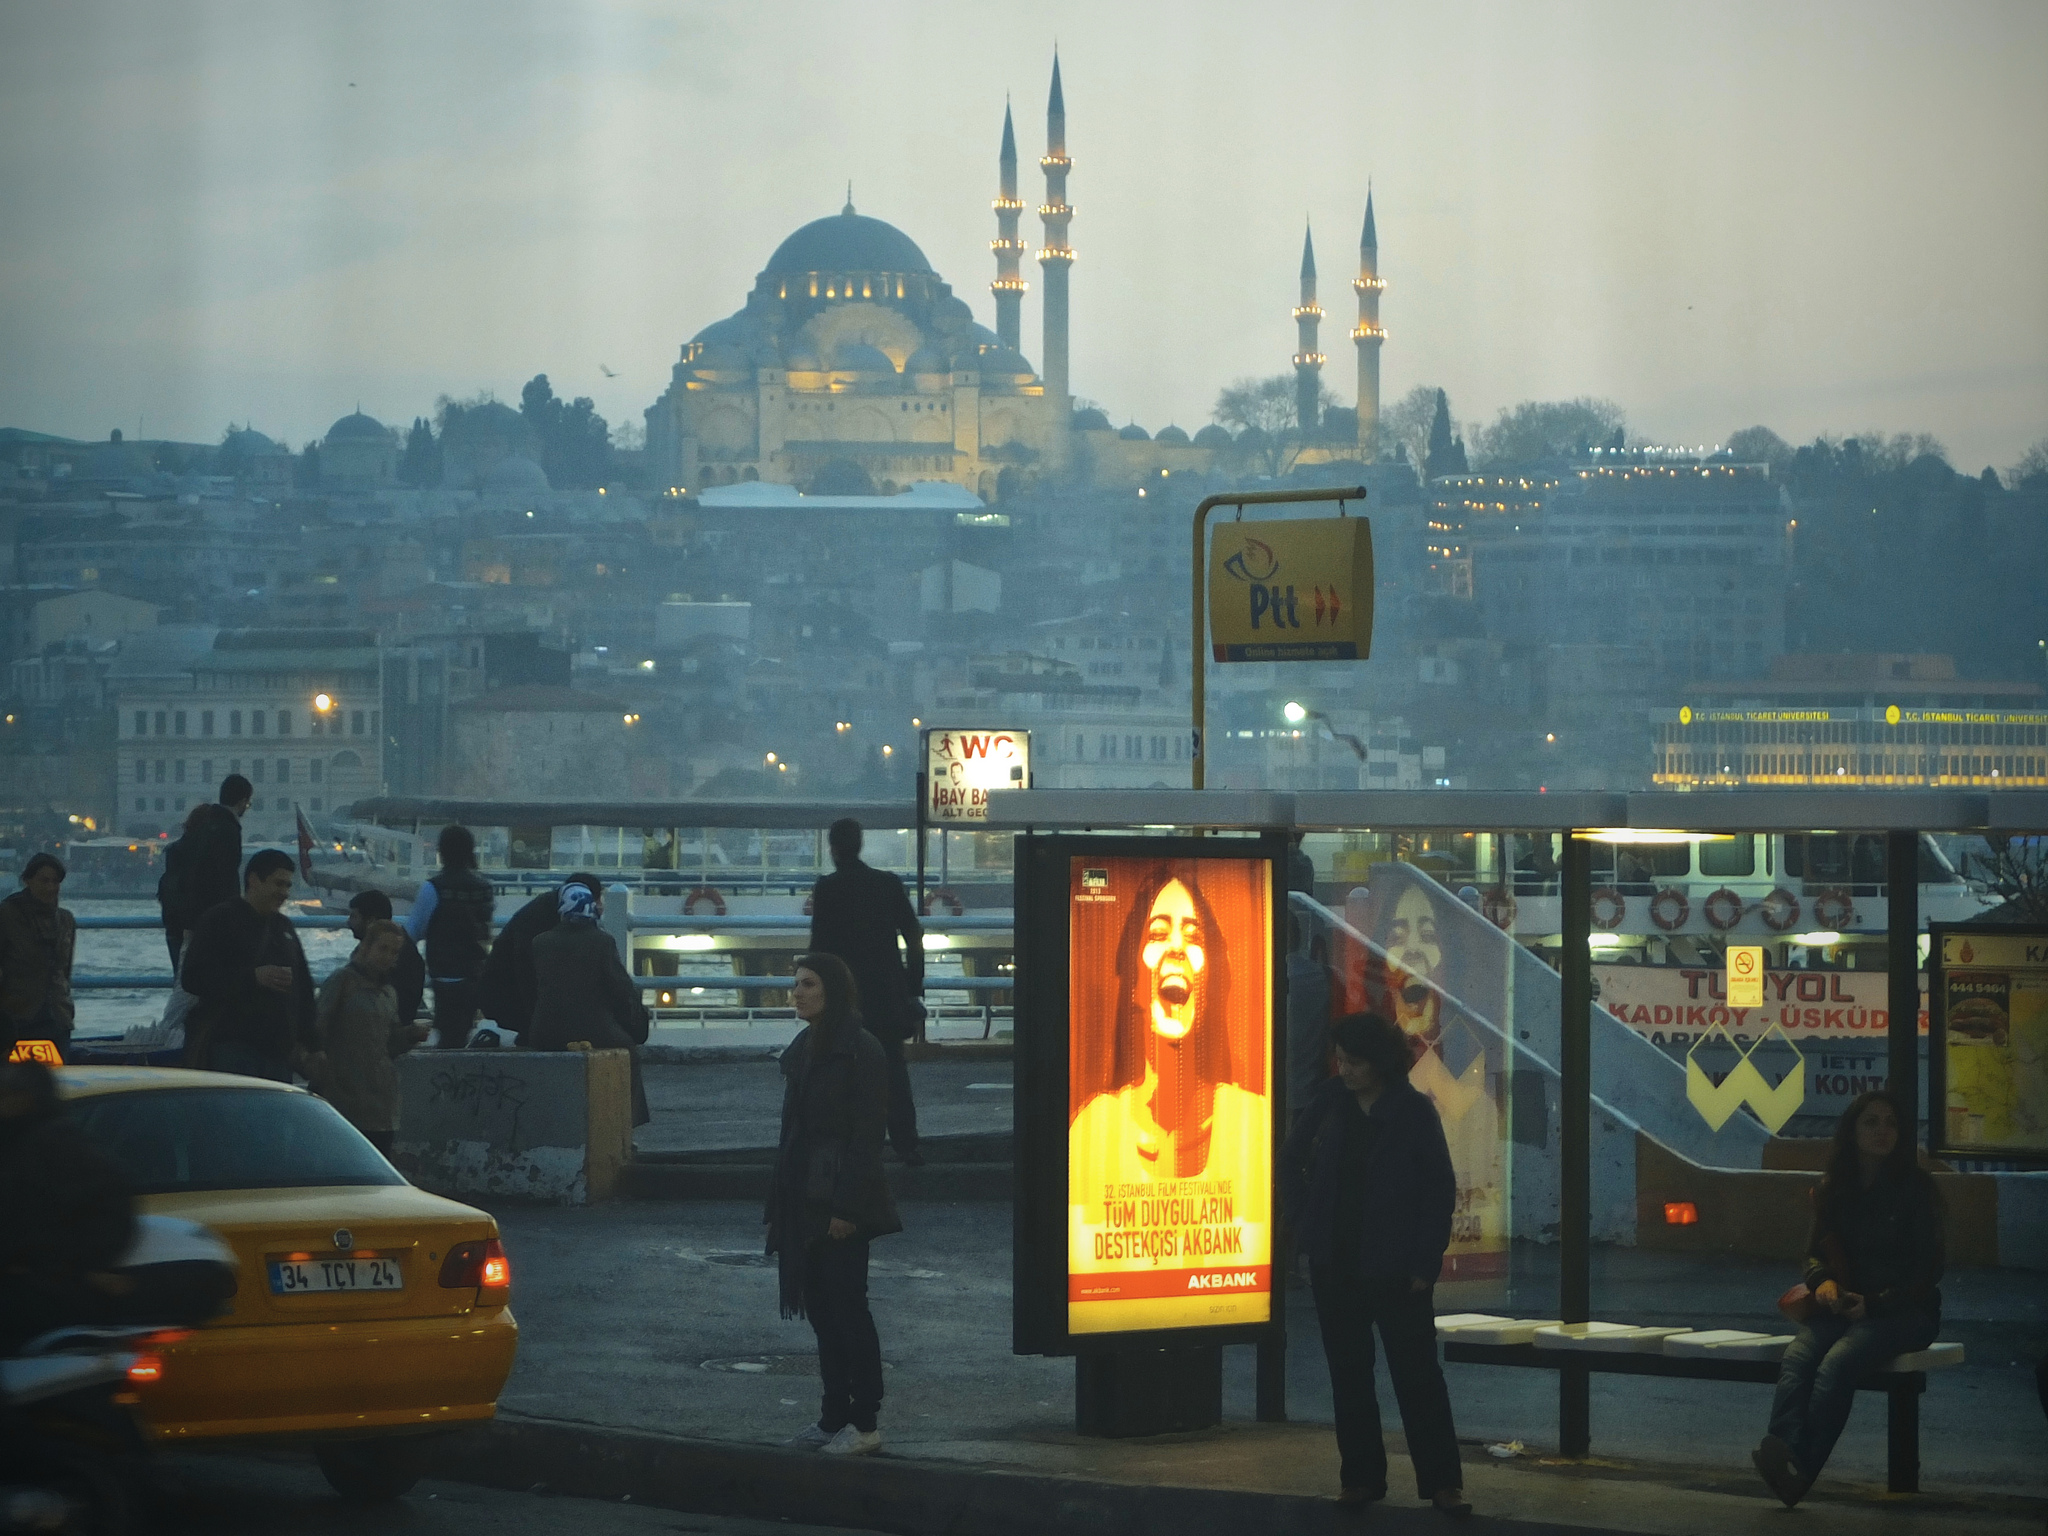 In Karakoy looking over the Golden Horn towards the Süleymaniye Mosque, Istanbul